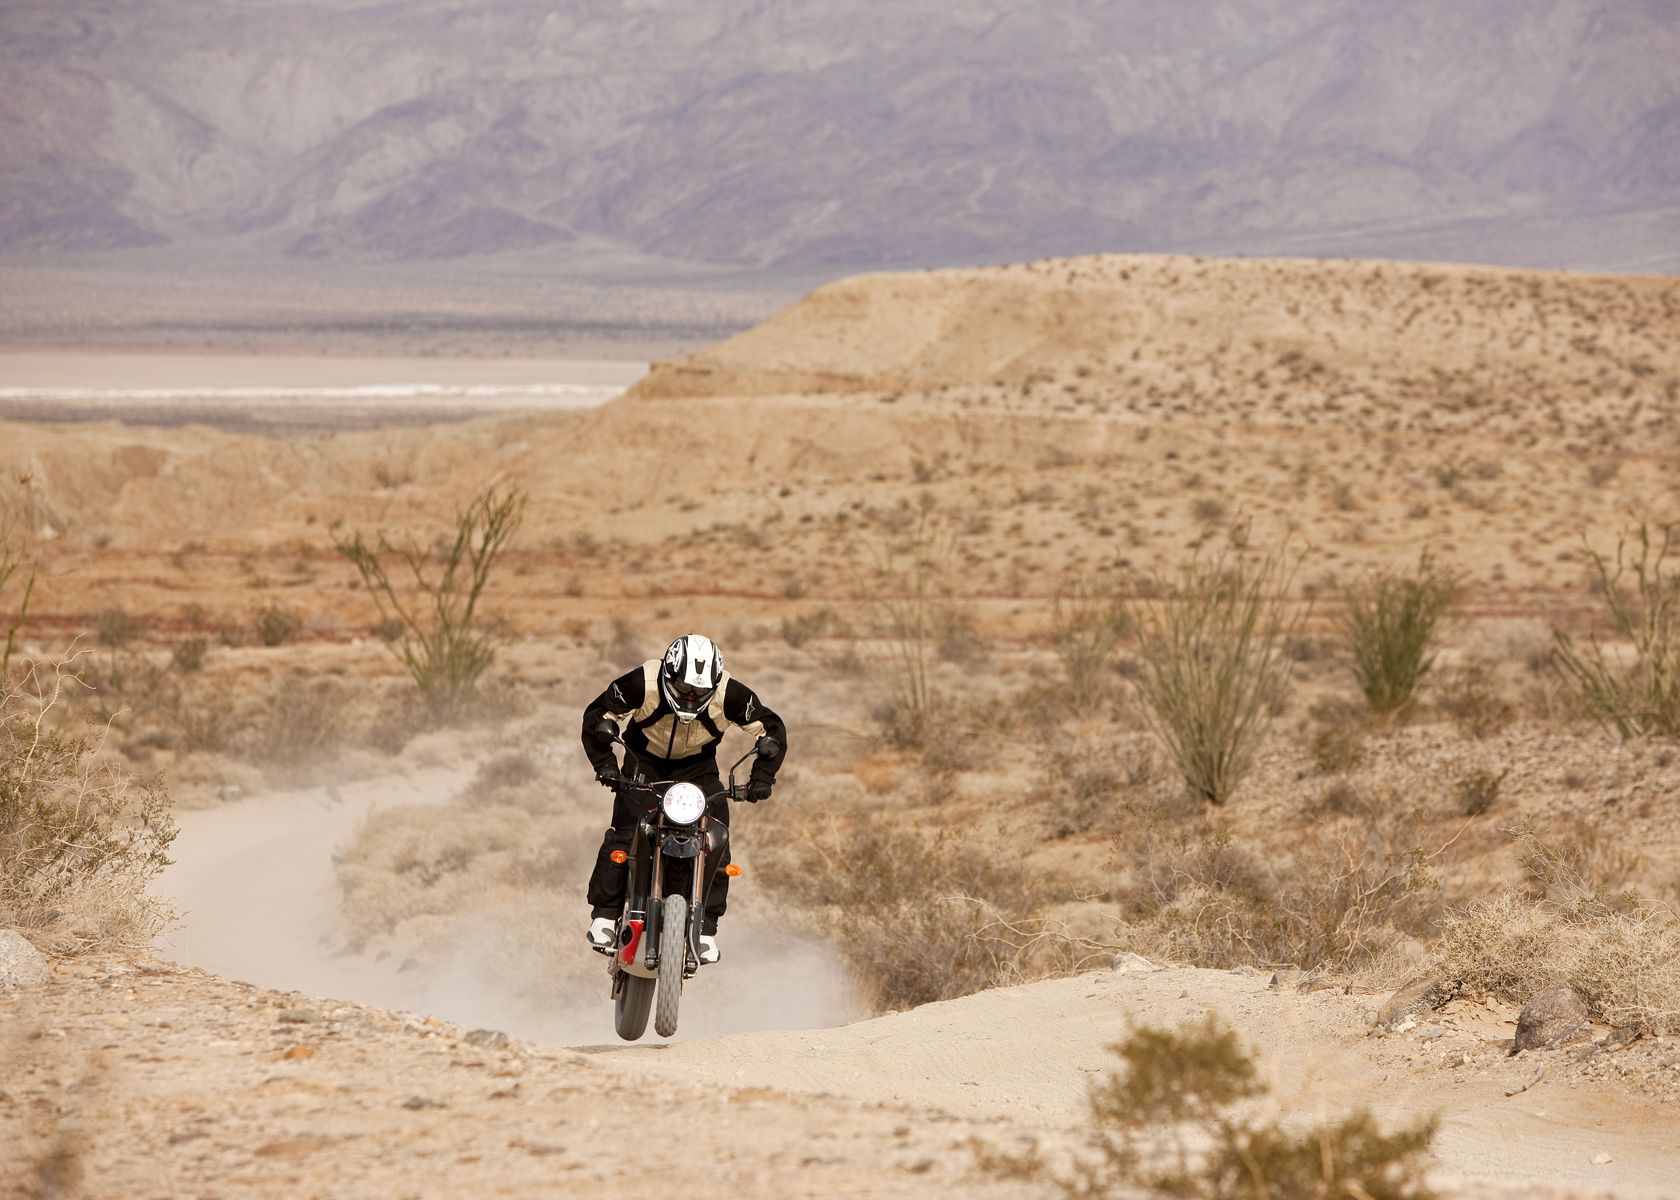 '.2010 Zero DS Electric Motorcycle: Anza Borego - One Man Charges in Sand.'